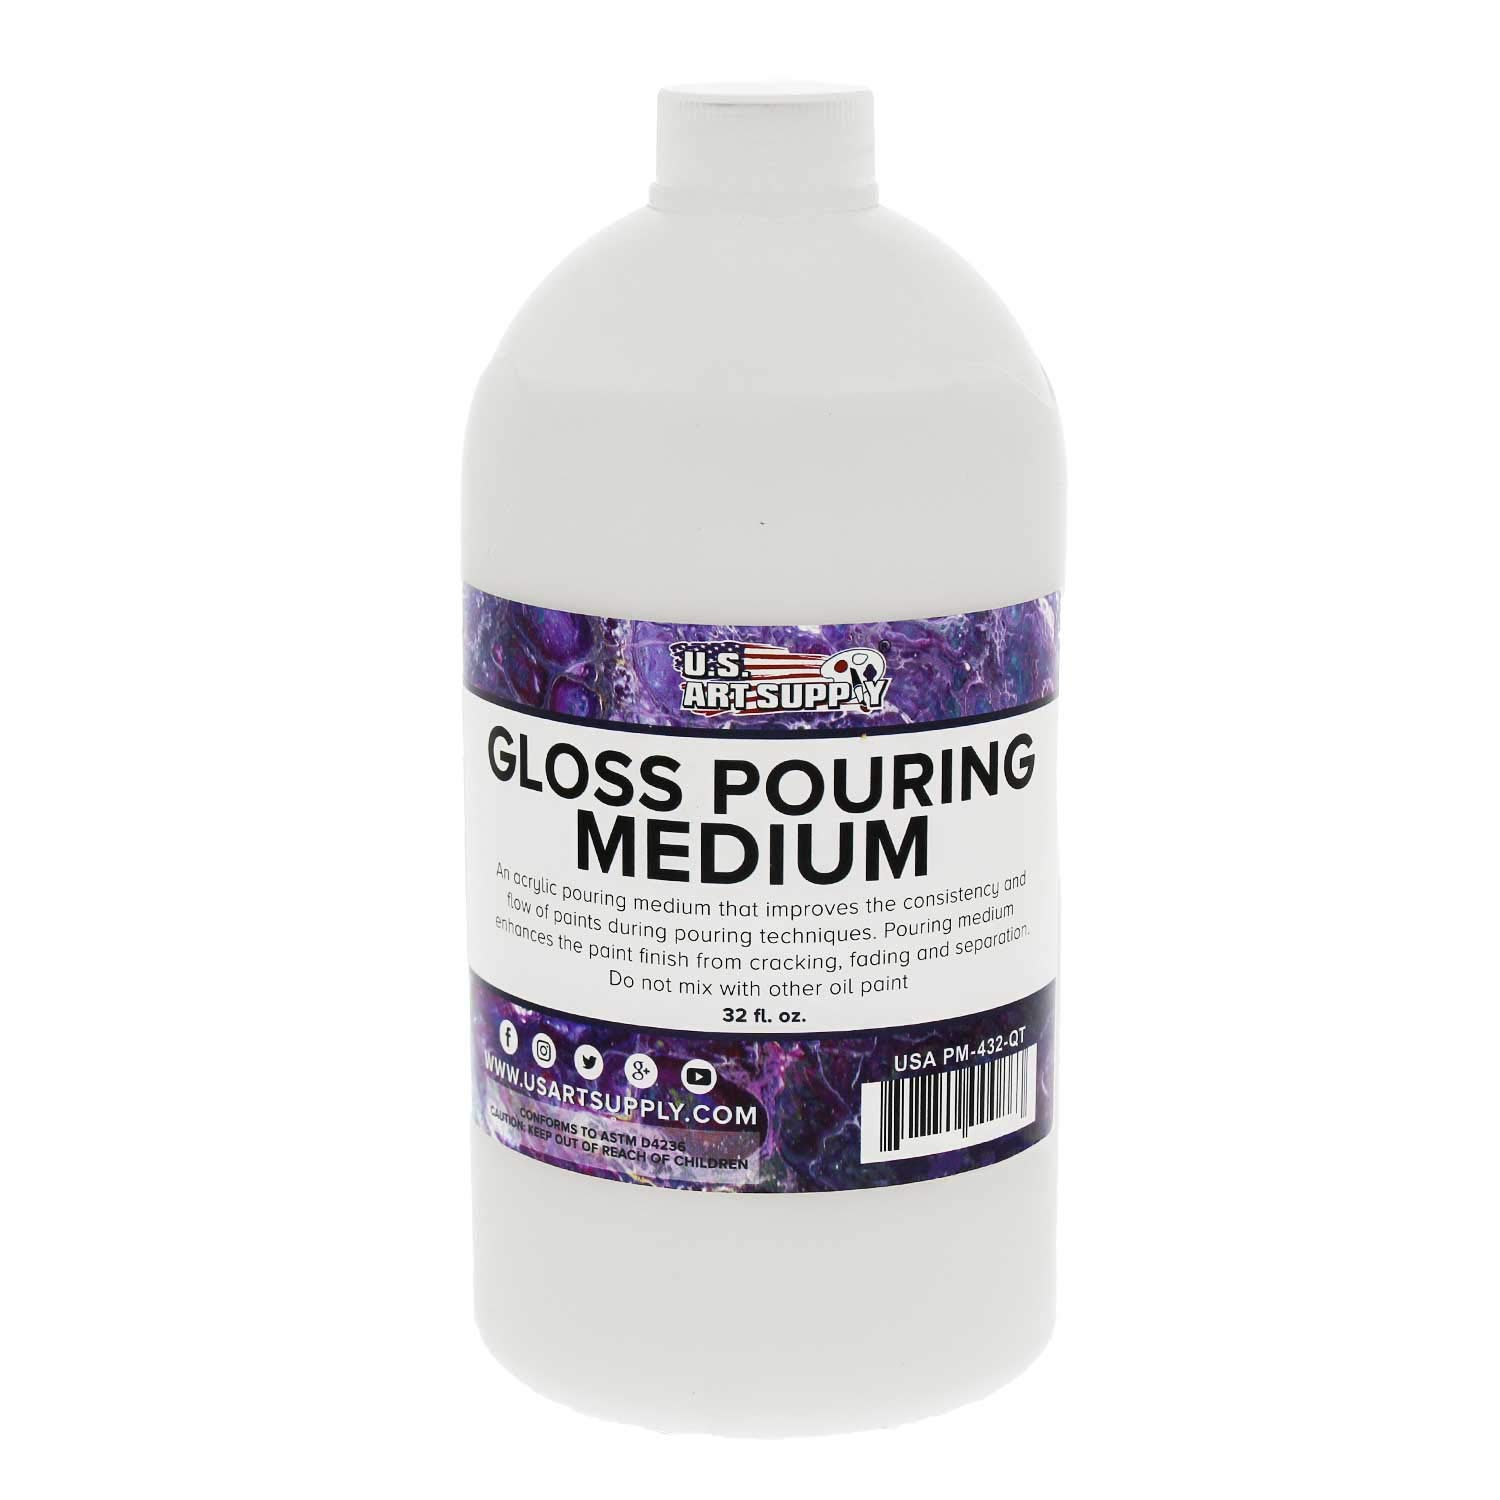 U.S. Art Supply Gloss Pouring Effects Medium - 32-Ounce/Quart by U.S. Art Supply